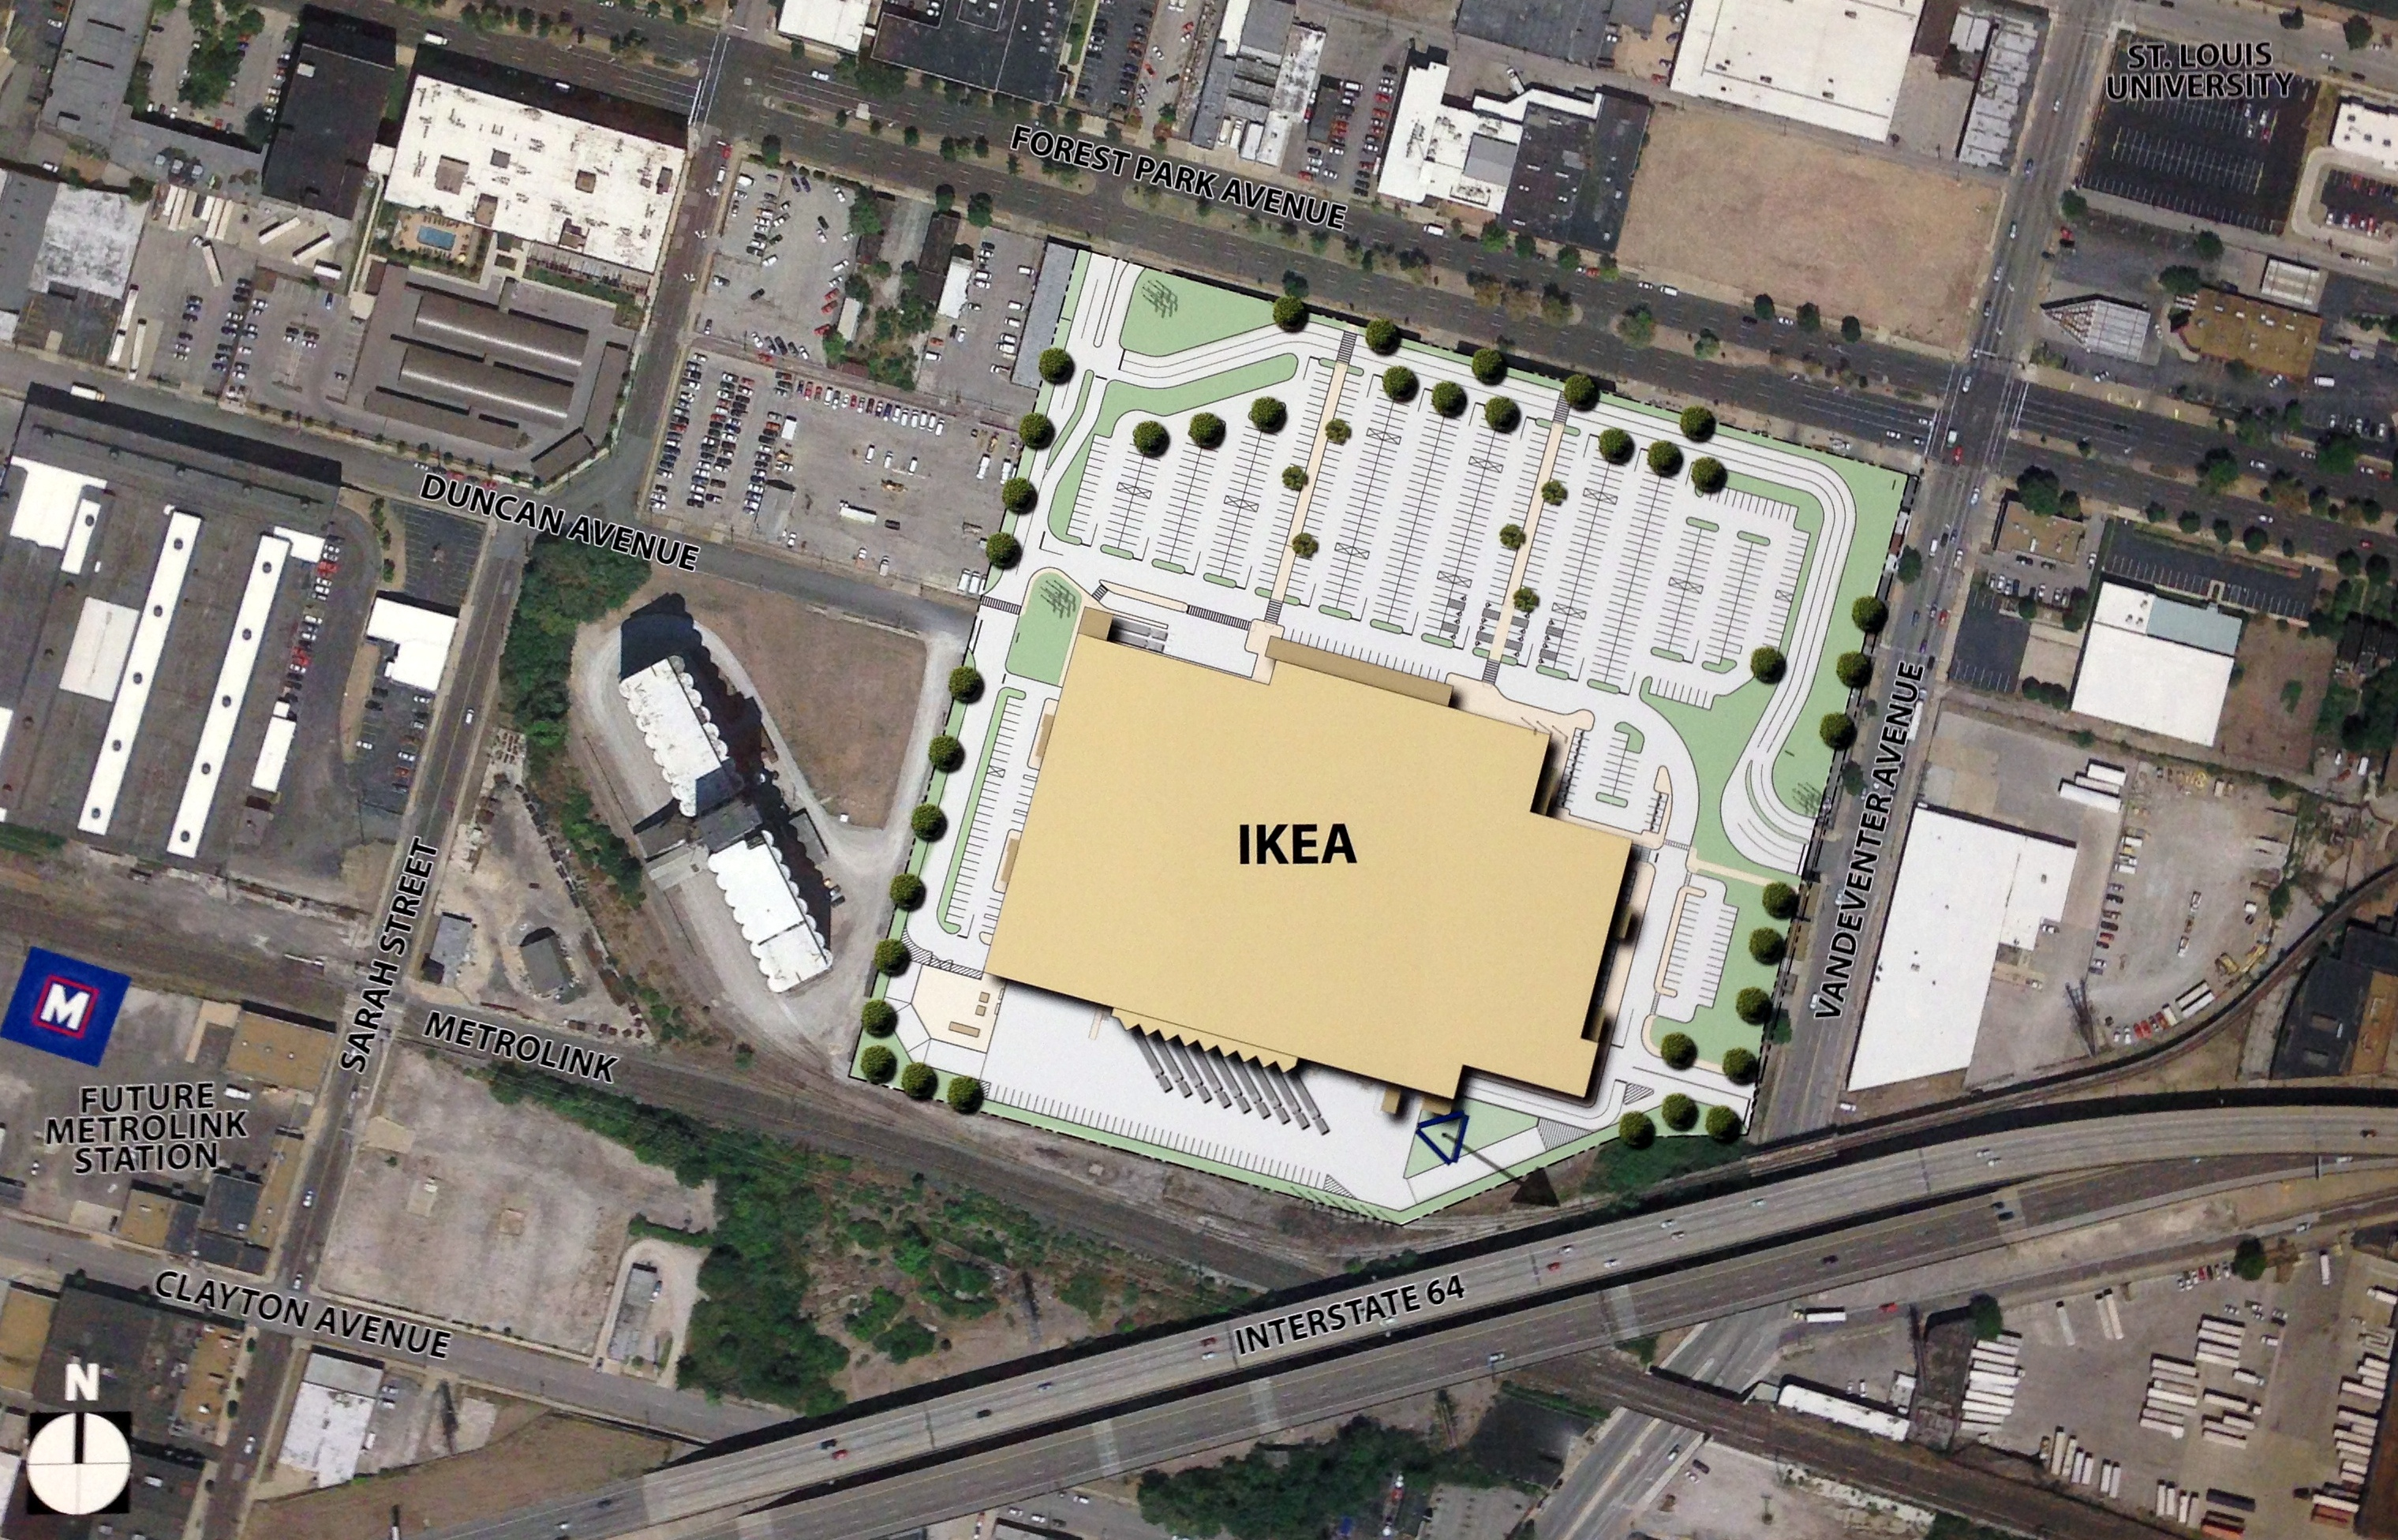 IKEA Proposes Opening First Indiana Store In Fishers Expected To - Maps of ikea us